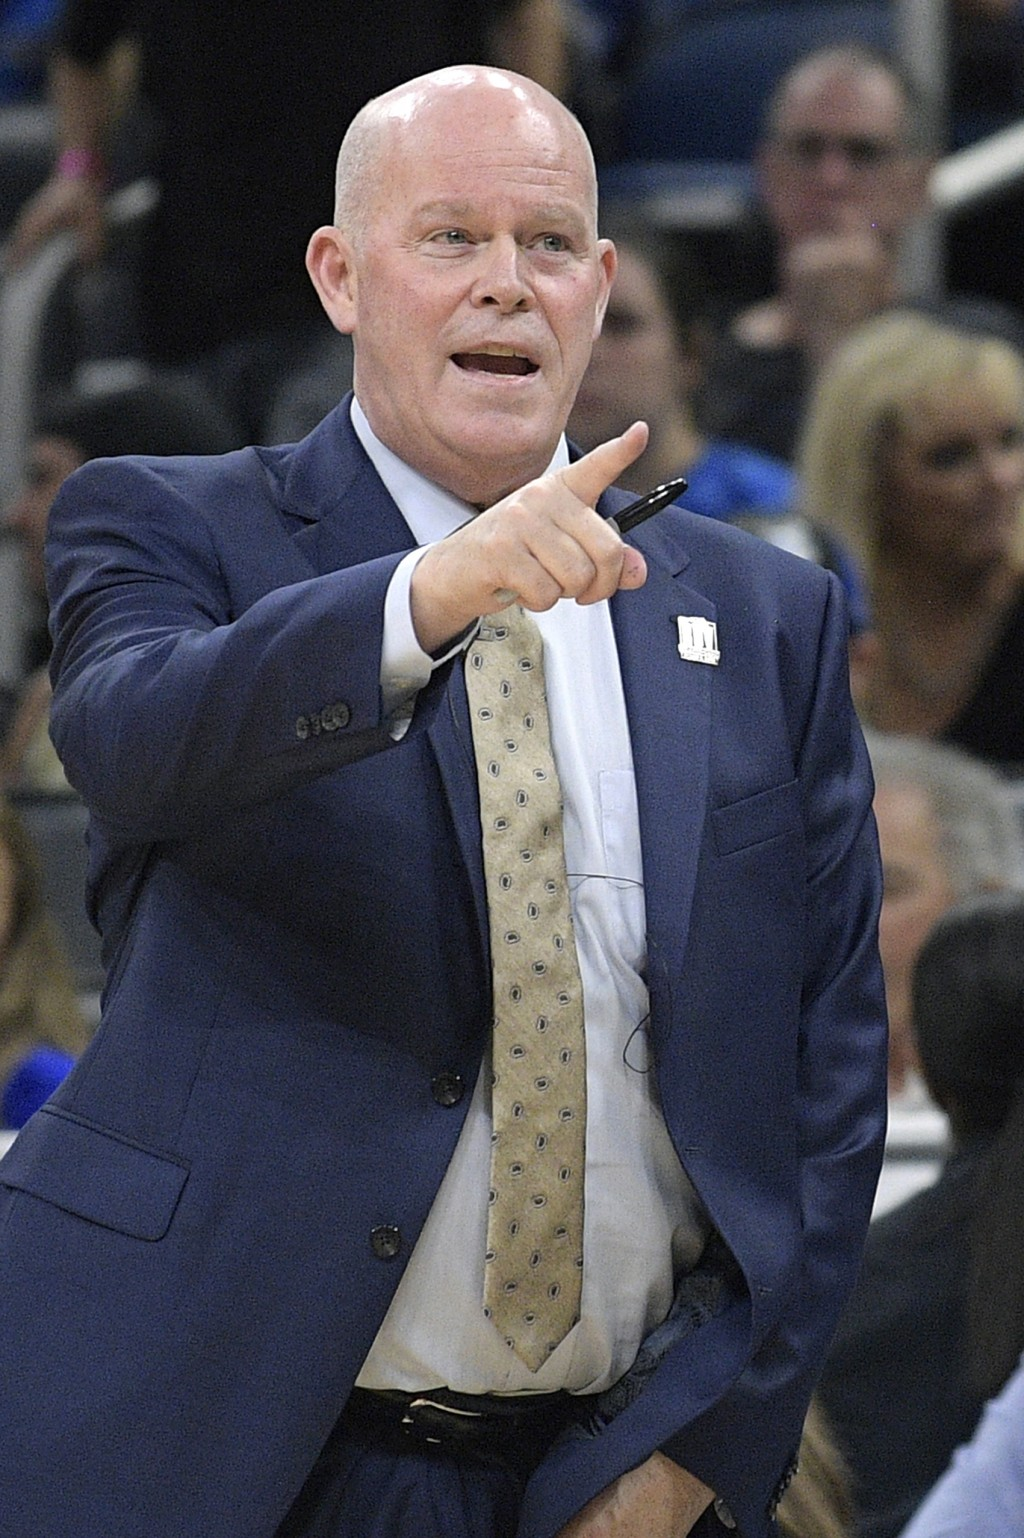 Orlando Magic coach Steve Clifford calls out instructions during the first half of the team's NBA basketball game against the Los Angeles Clippers on